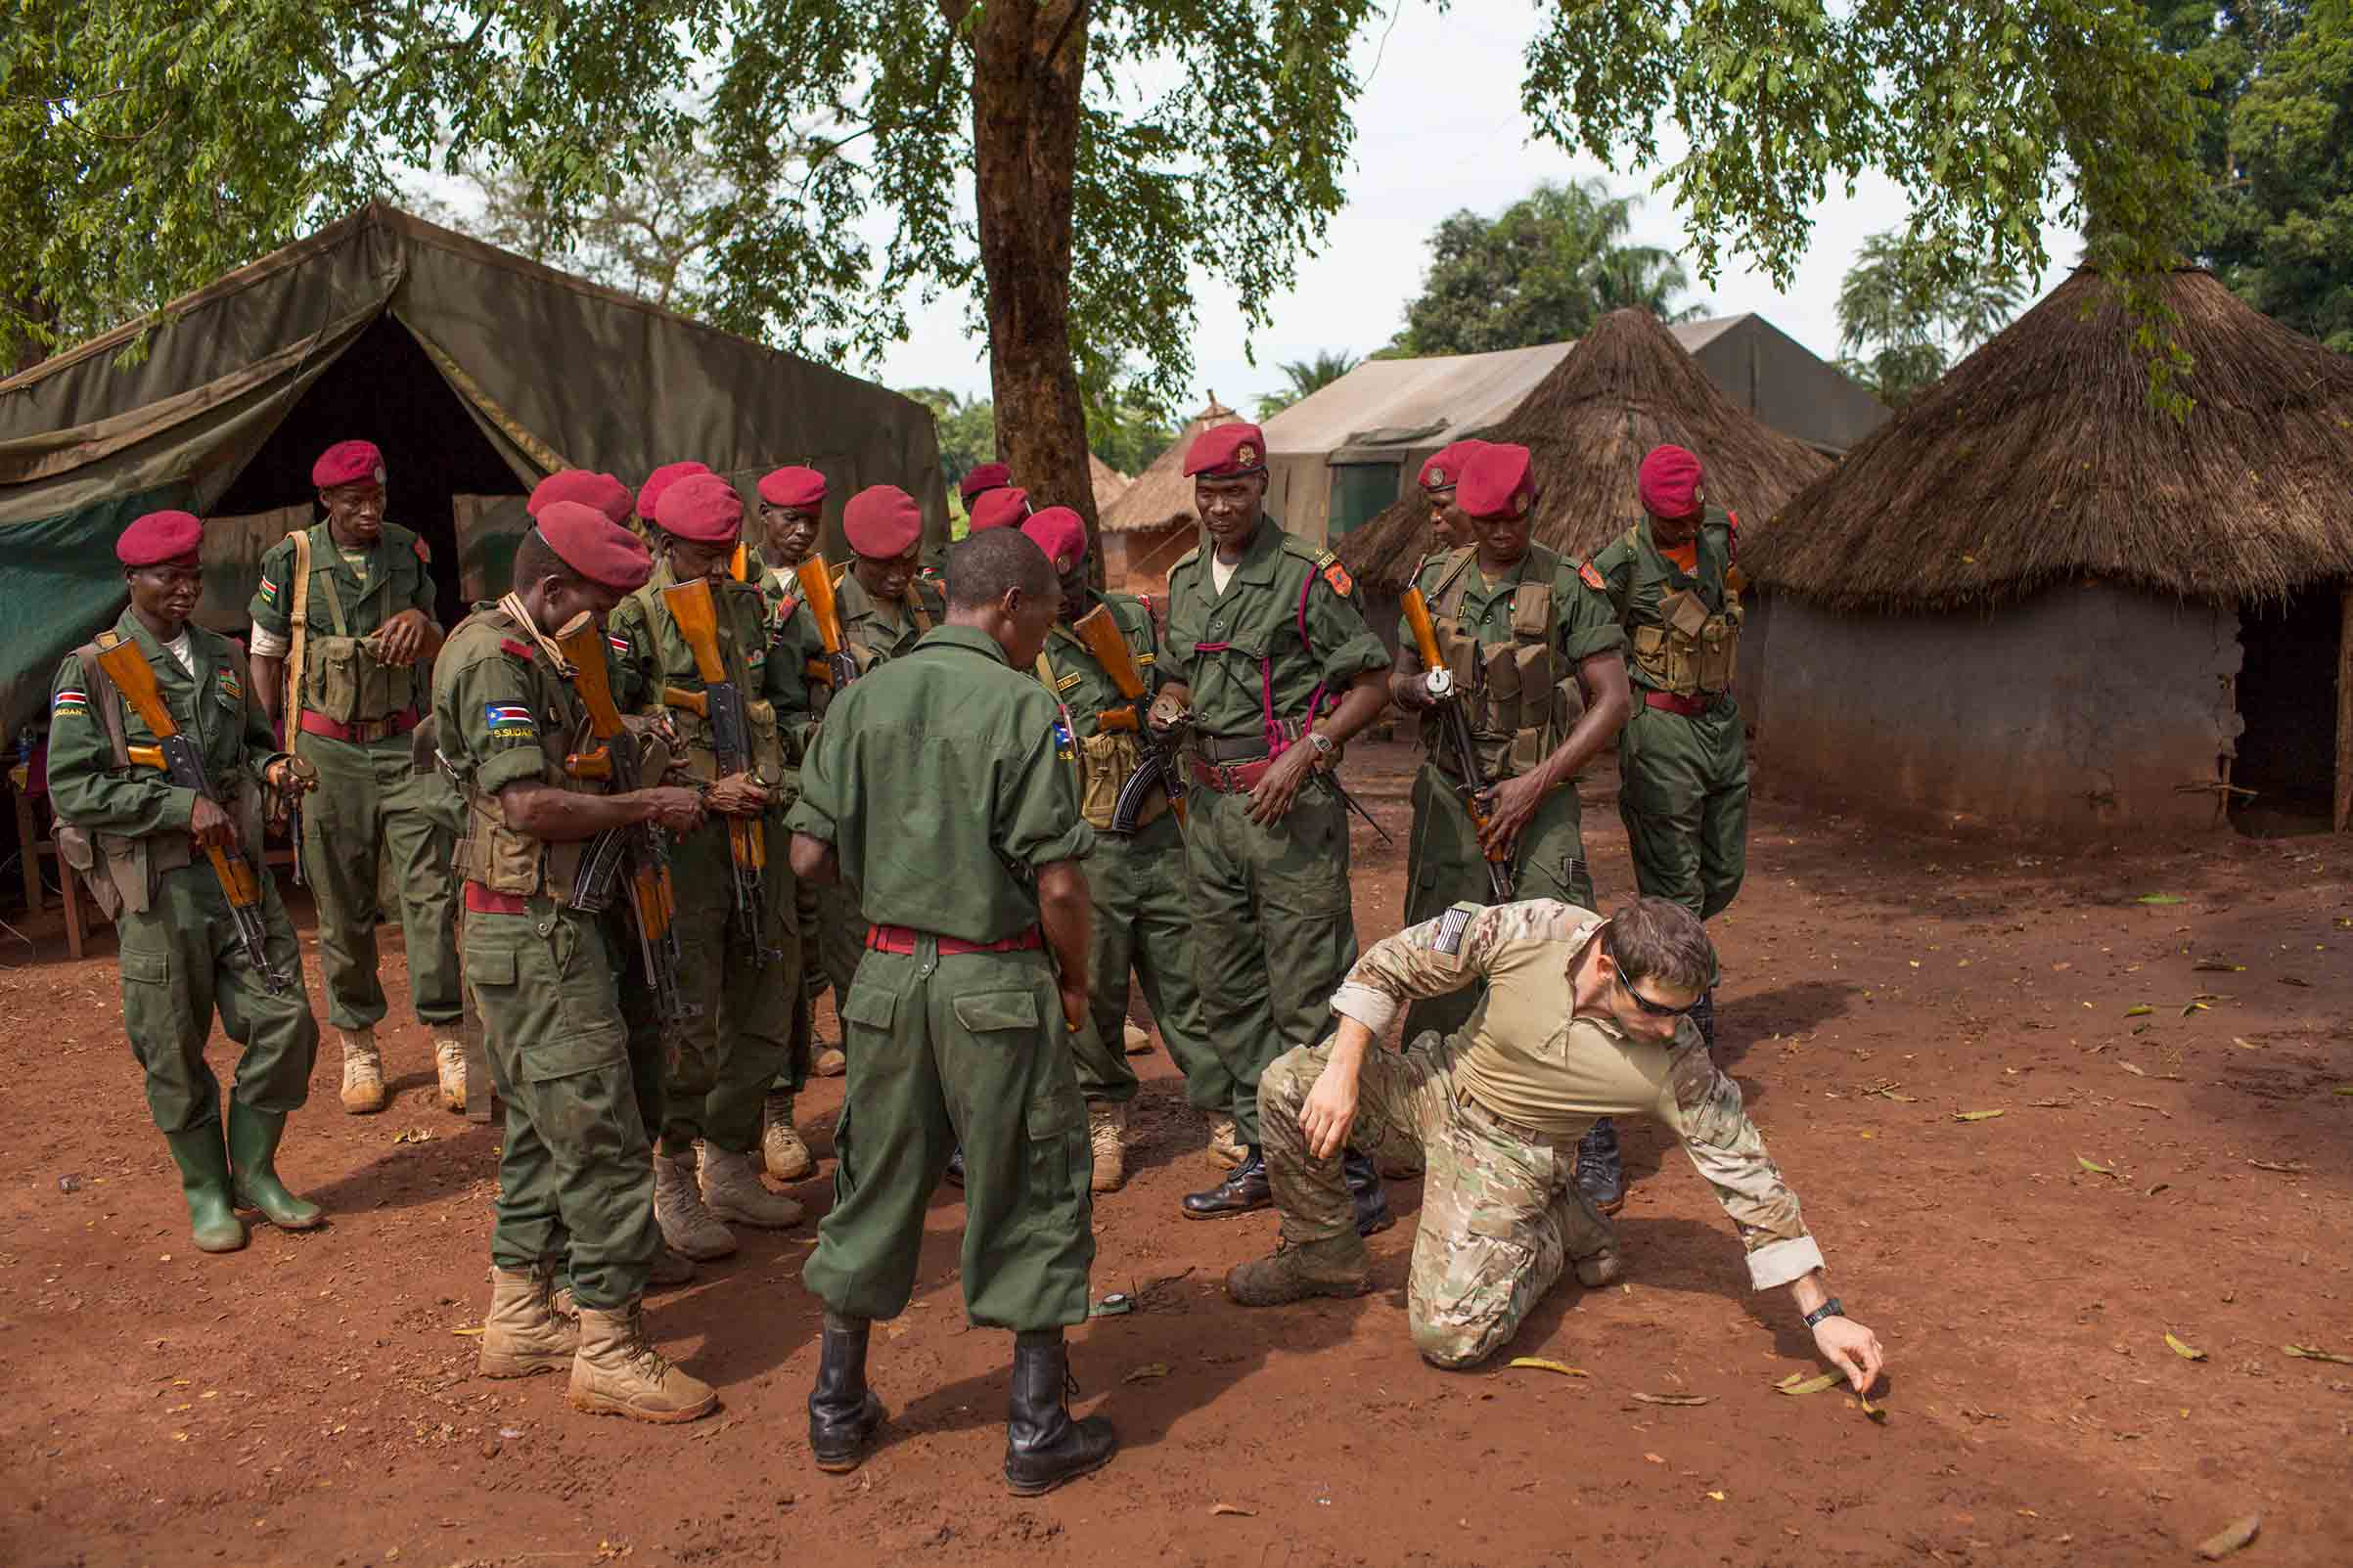 American Green Berets teach navigation techniques to soldiers from the Sudan People's Liberation Army near a U.S. base in Nzara, South Sudan, that coordinates intelligence operations